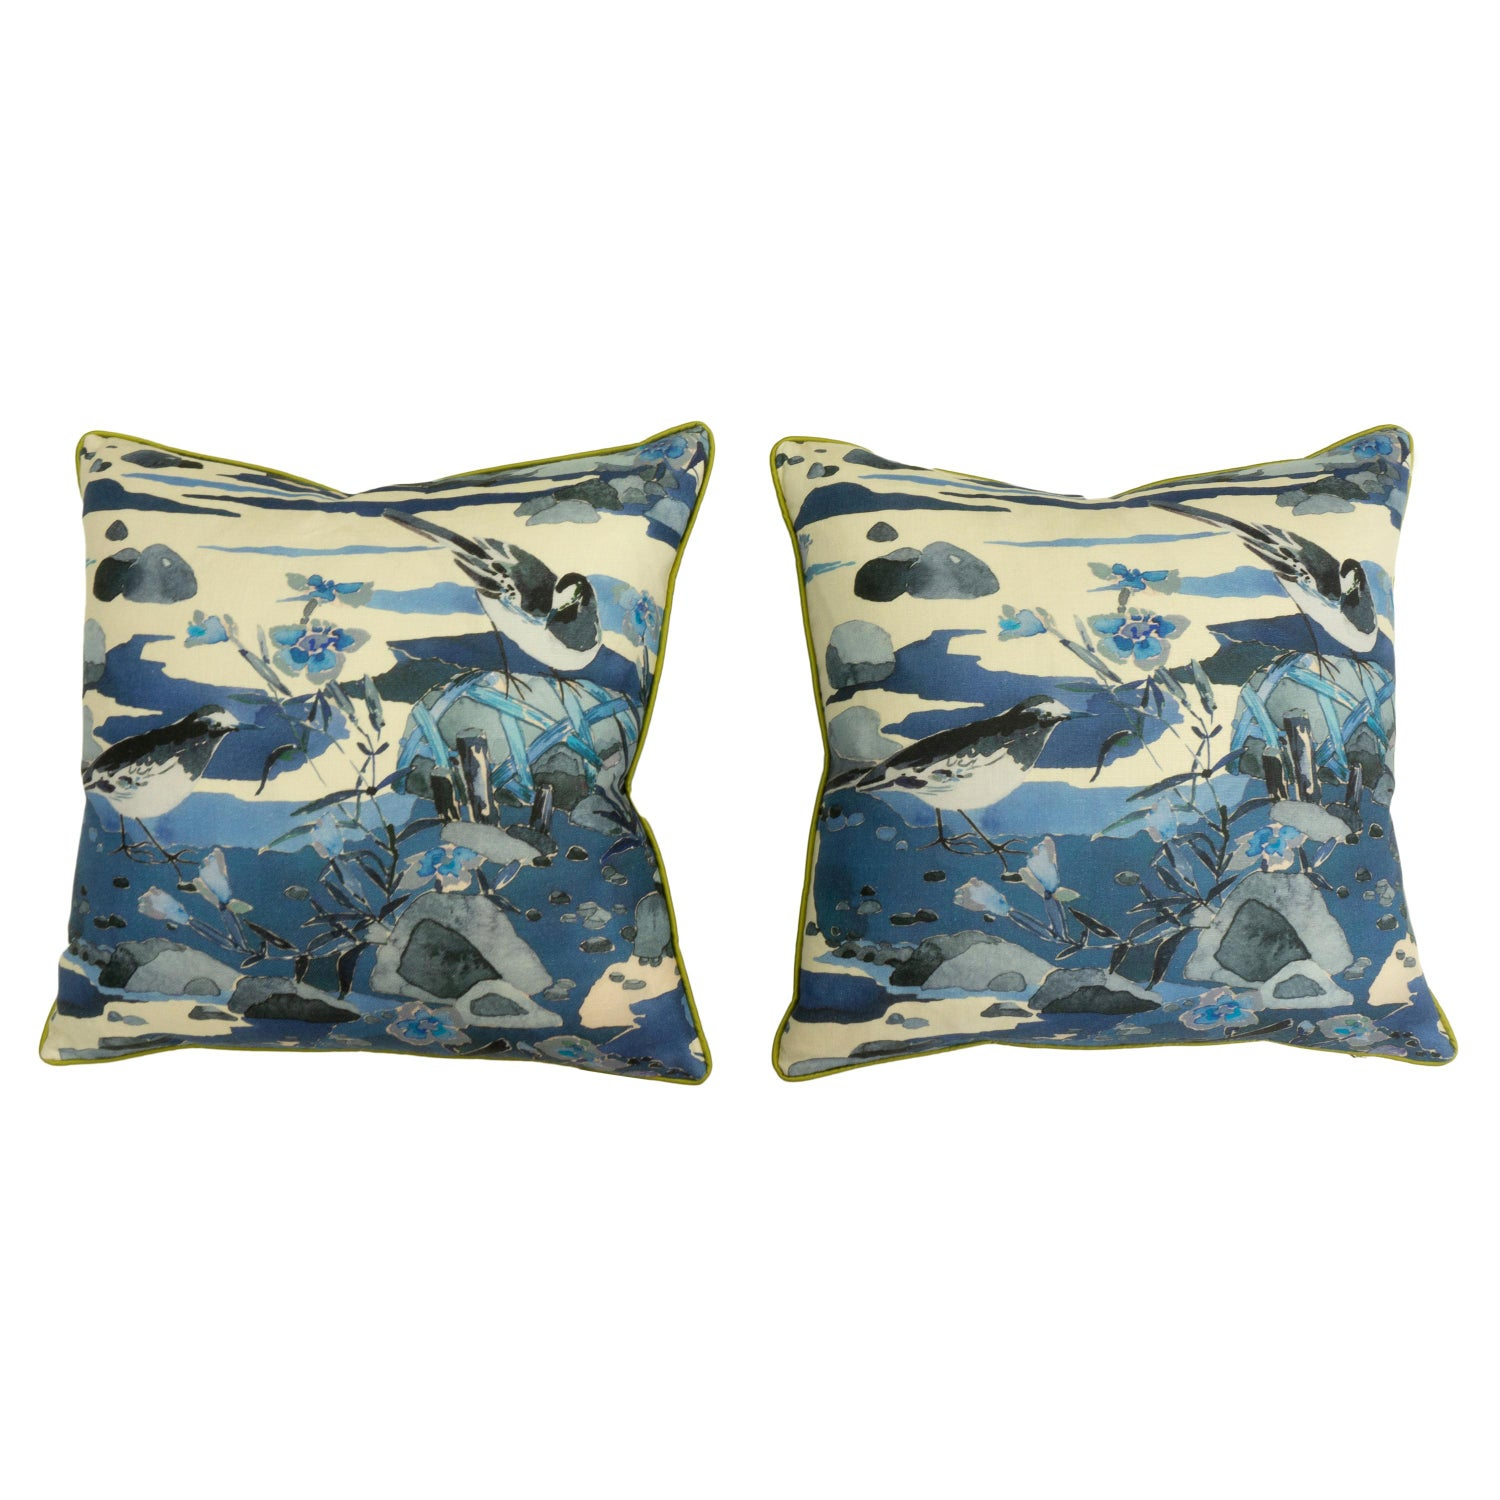 Throw Pillows With Smiling School Of Fish Pattern For Sale At 1stdibs